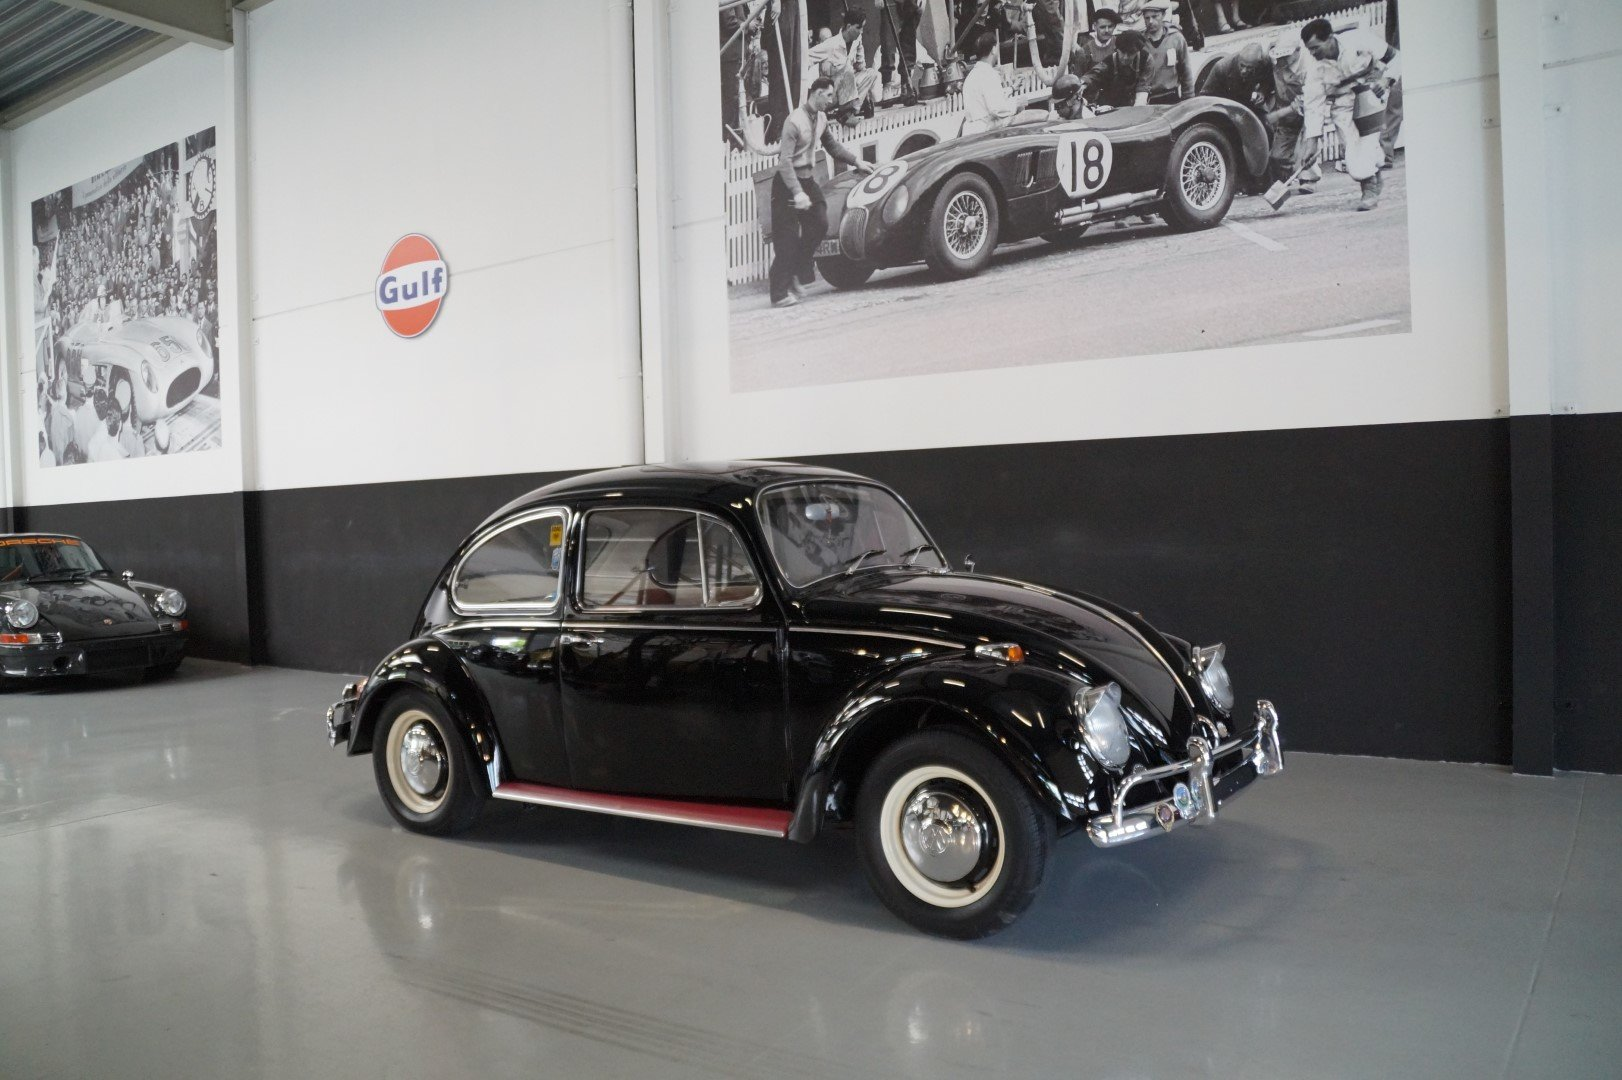 VOLKSWAGEN BEETLE matching numbers fully restored (1967) For Sale (picture 1 of 6)